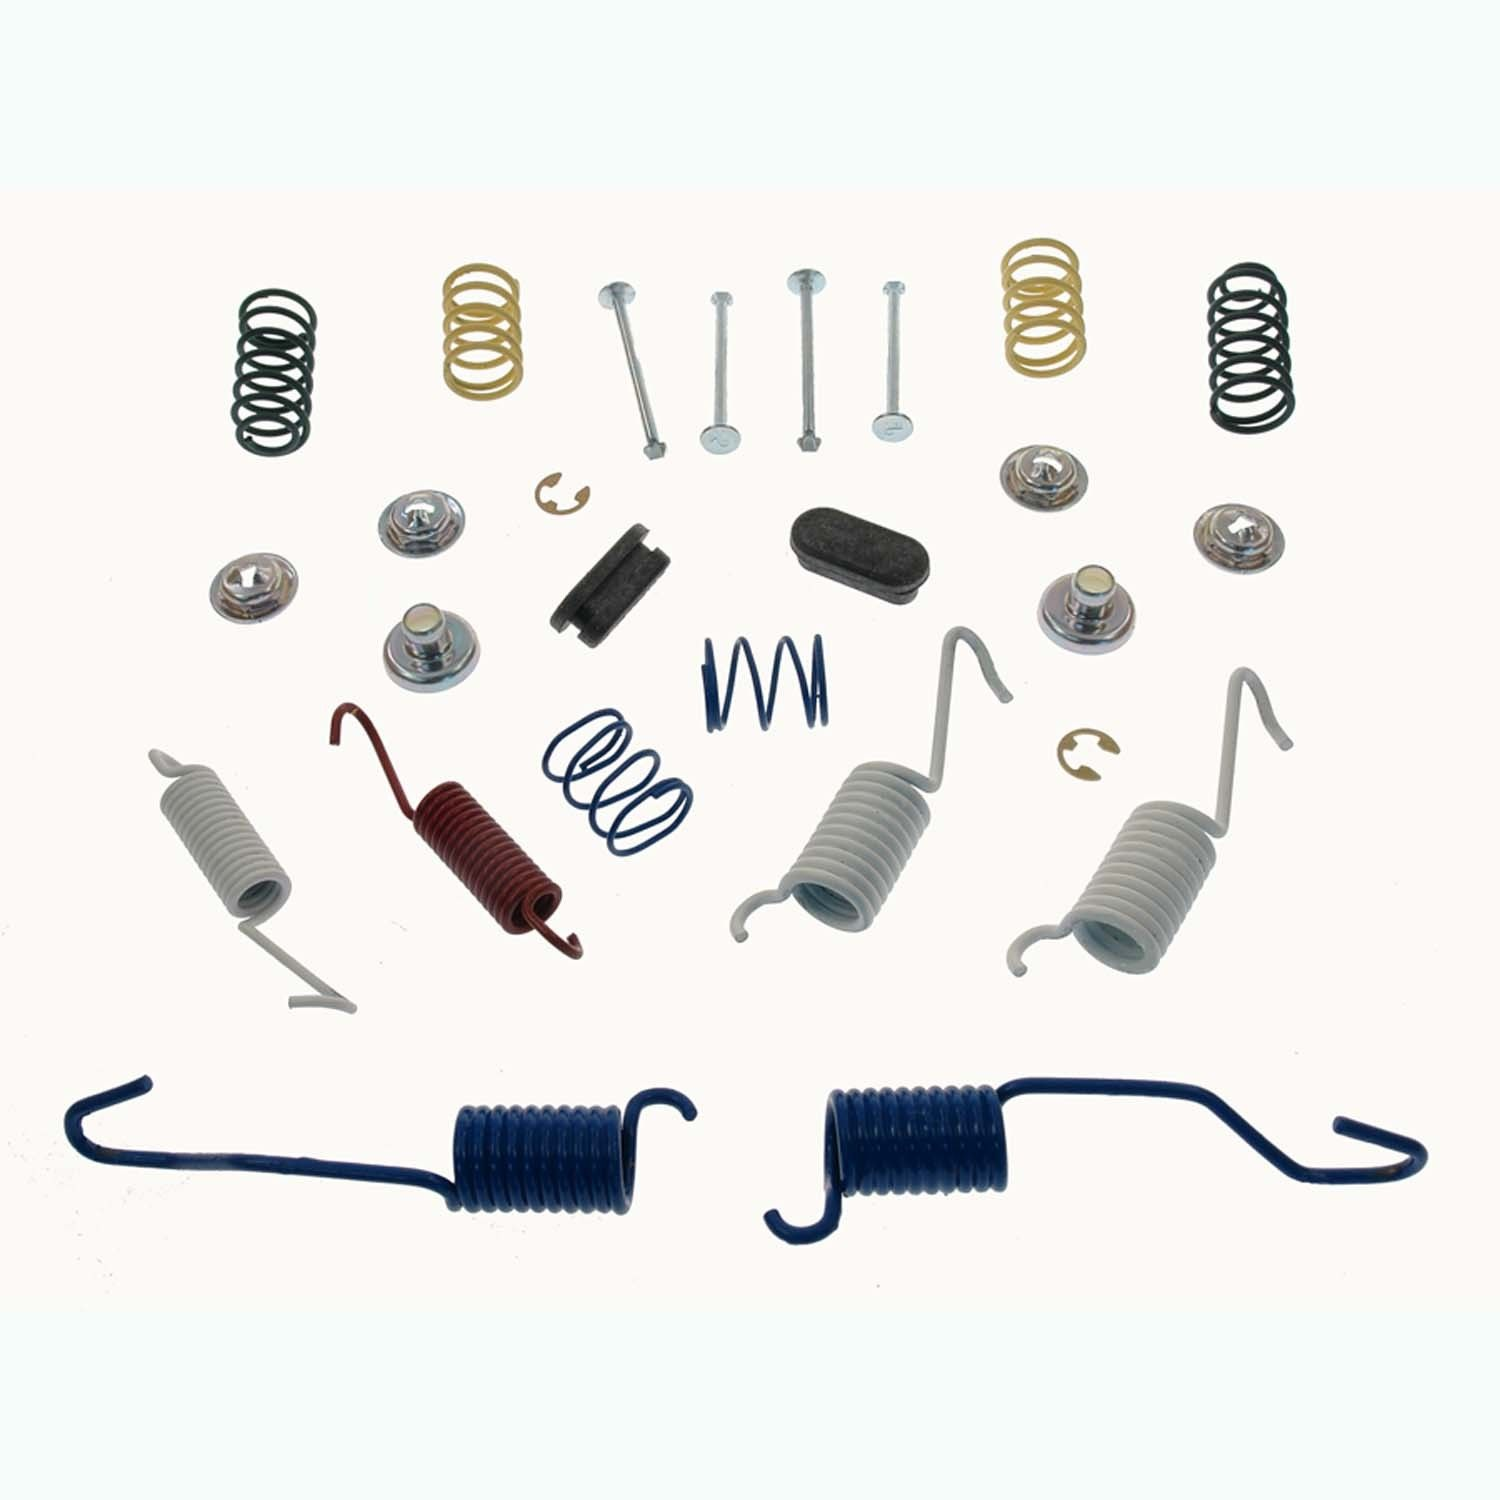 drum brake hardware kit replacement acdelco beck arnley carlson centr go parts. Black Bedroom Furniture Sets. Home Design Ideas